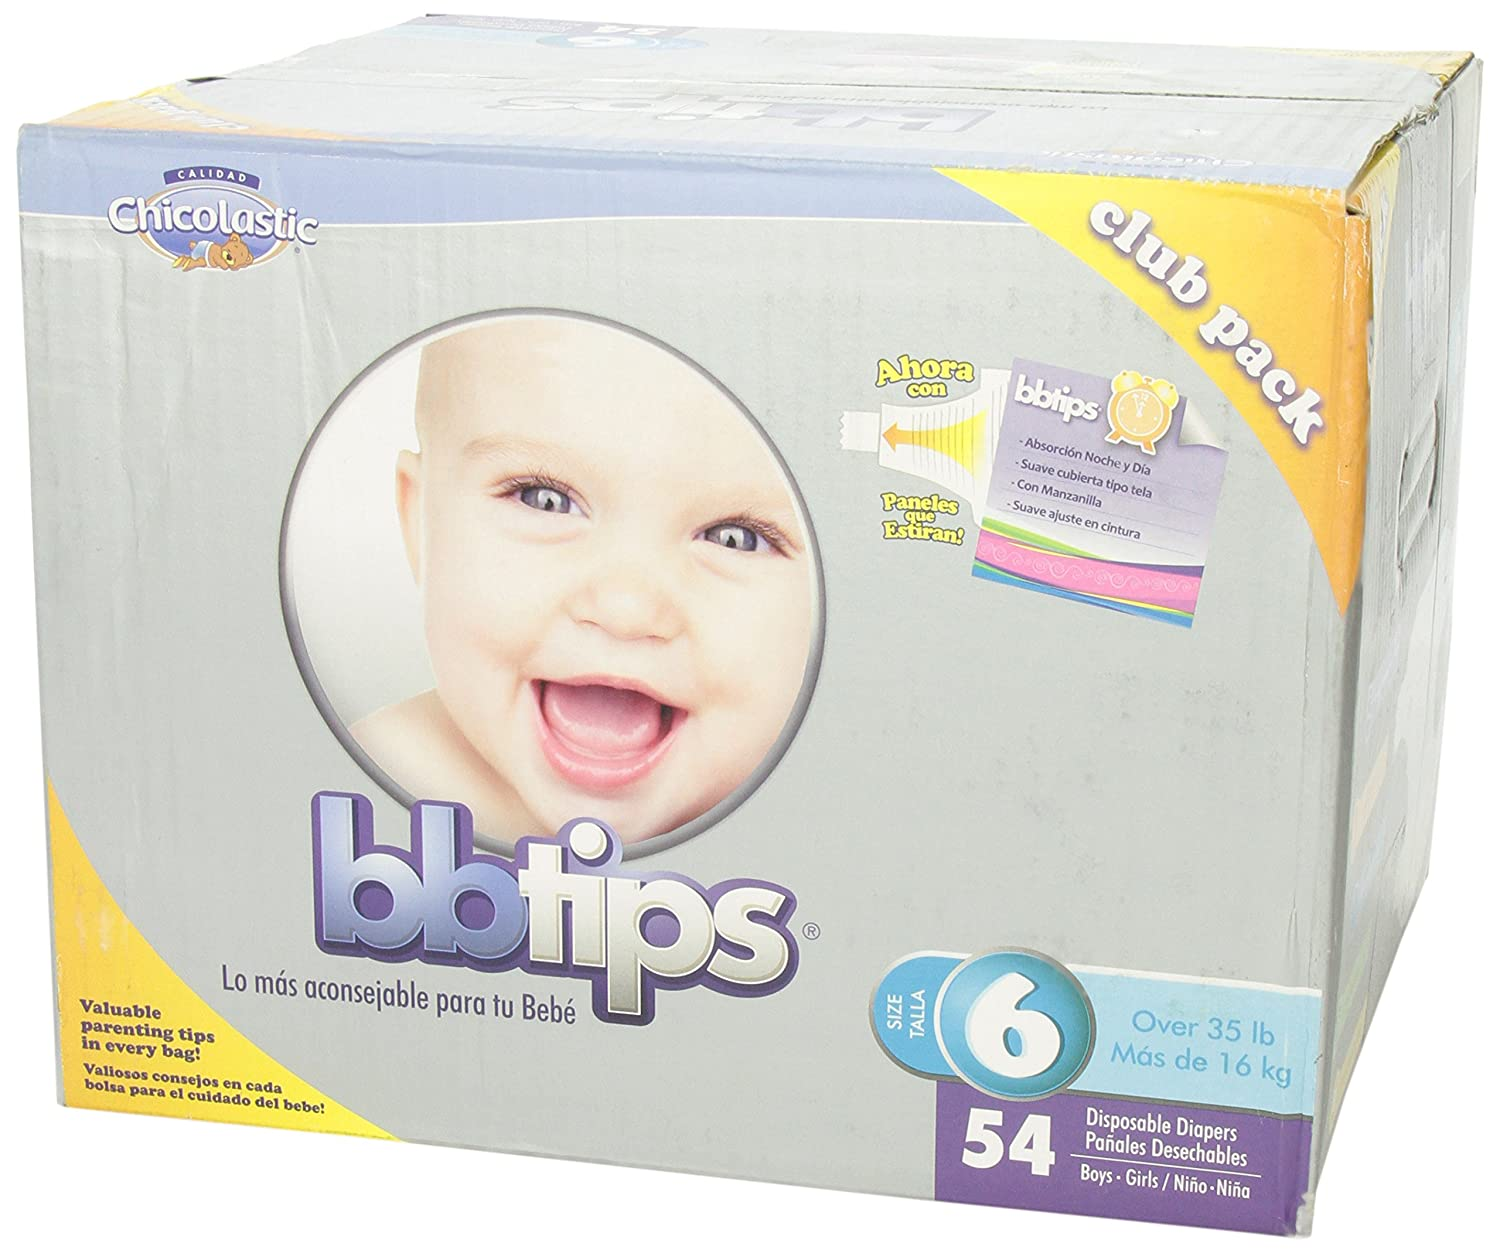 Amazon.com: Chicolastic Bbtips Infant Disposable Ultra Diapers, XX-Large, Size 6, 54 Count: Health & Personal Care